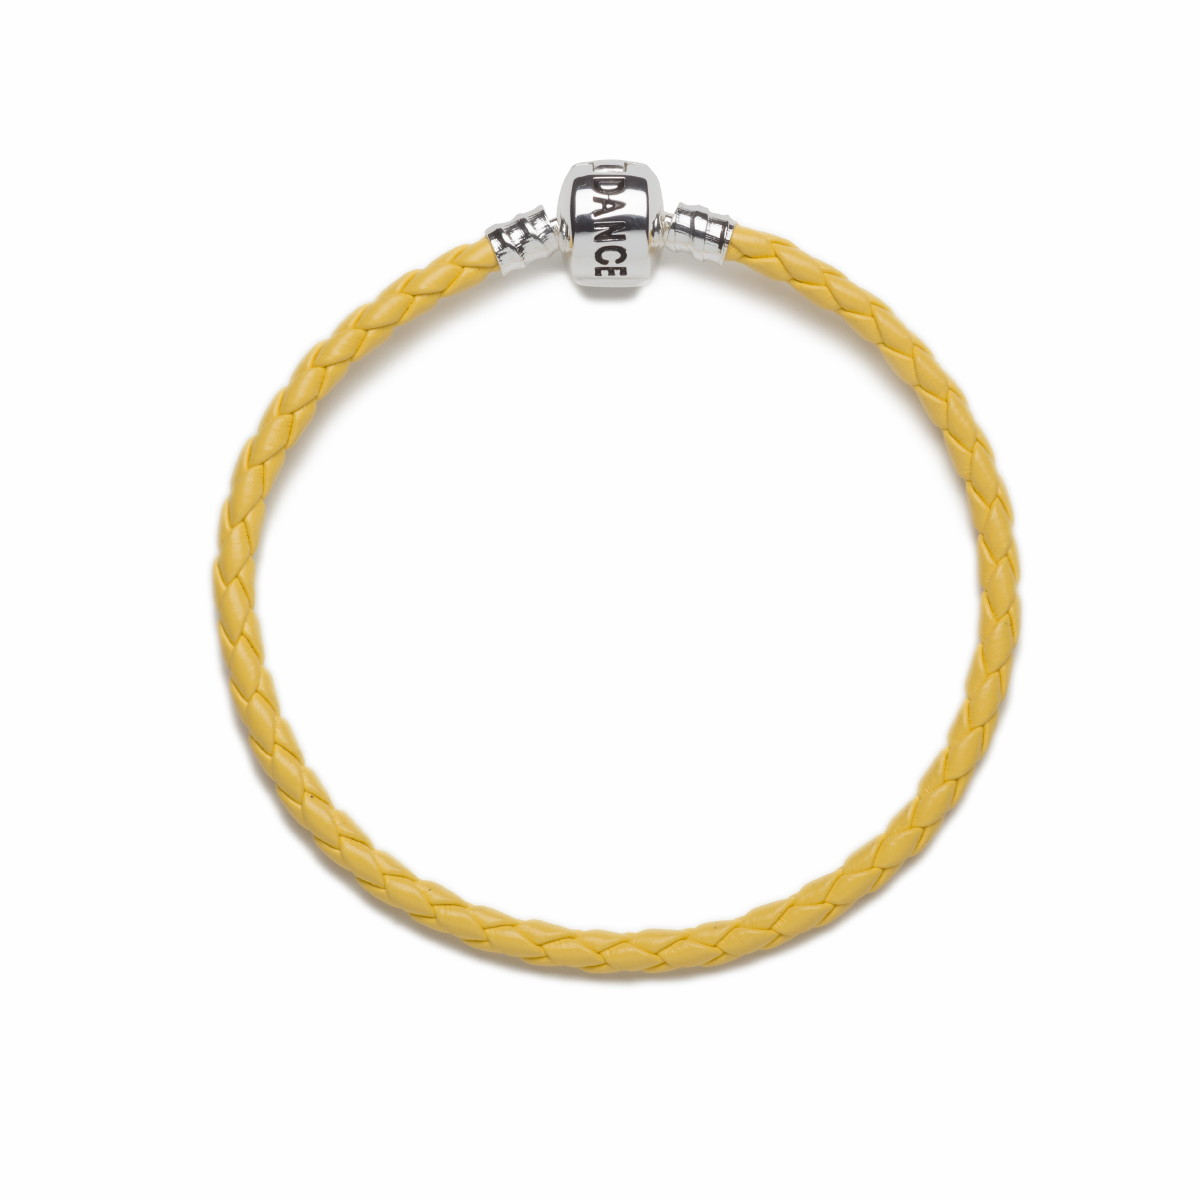 Official Riverdance20 Yellow Leather Style Charm Bracelet